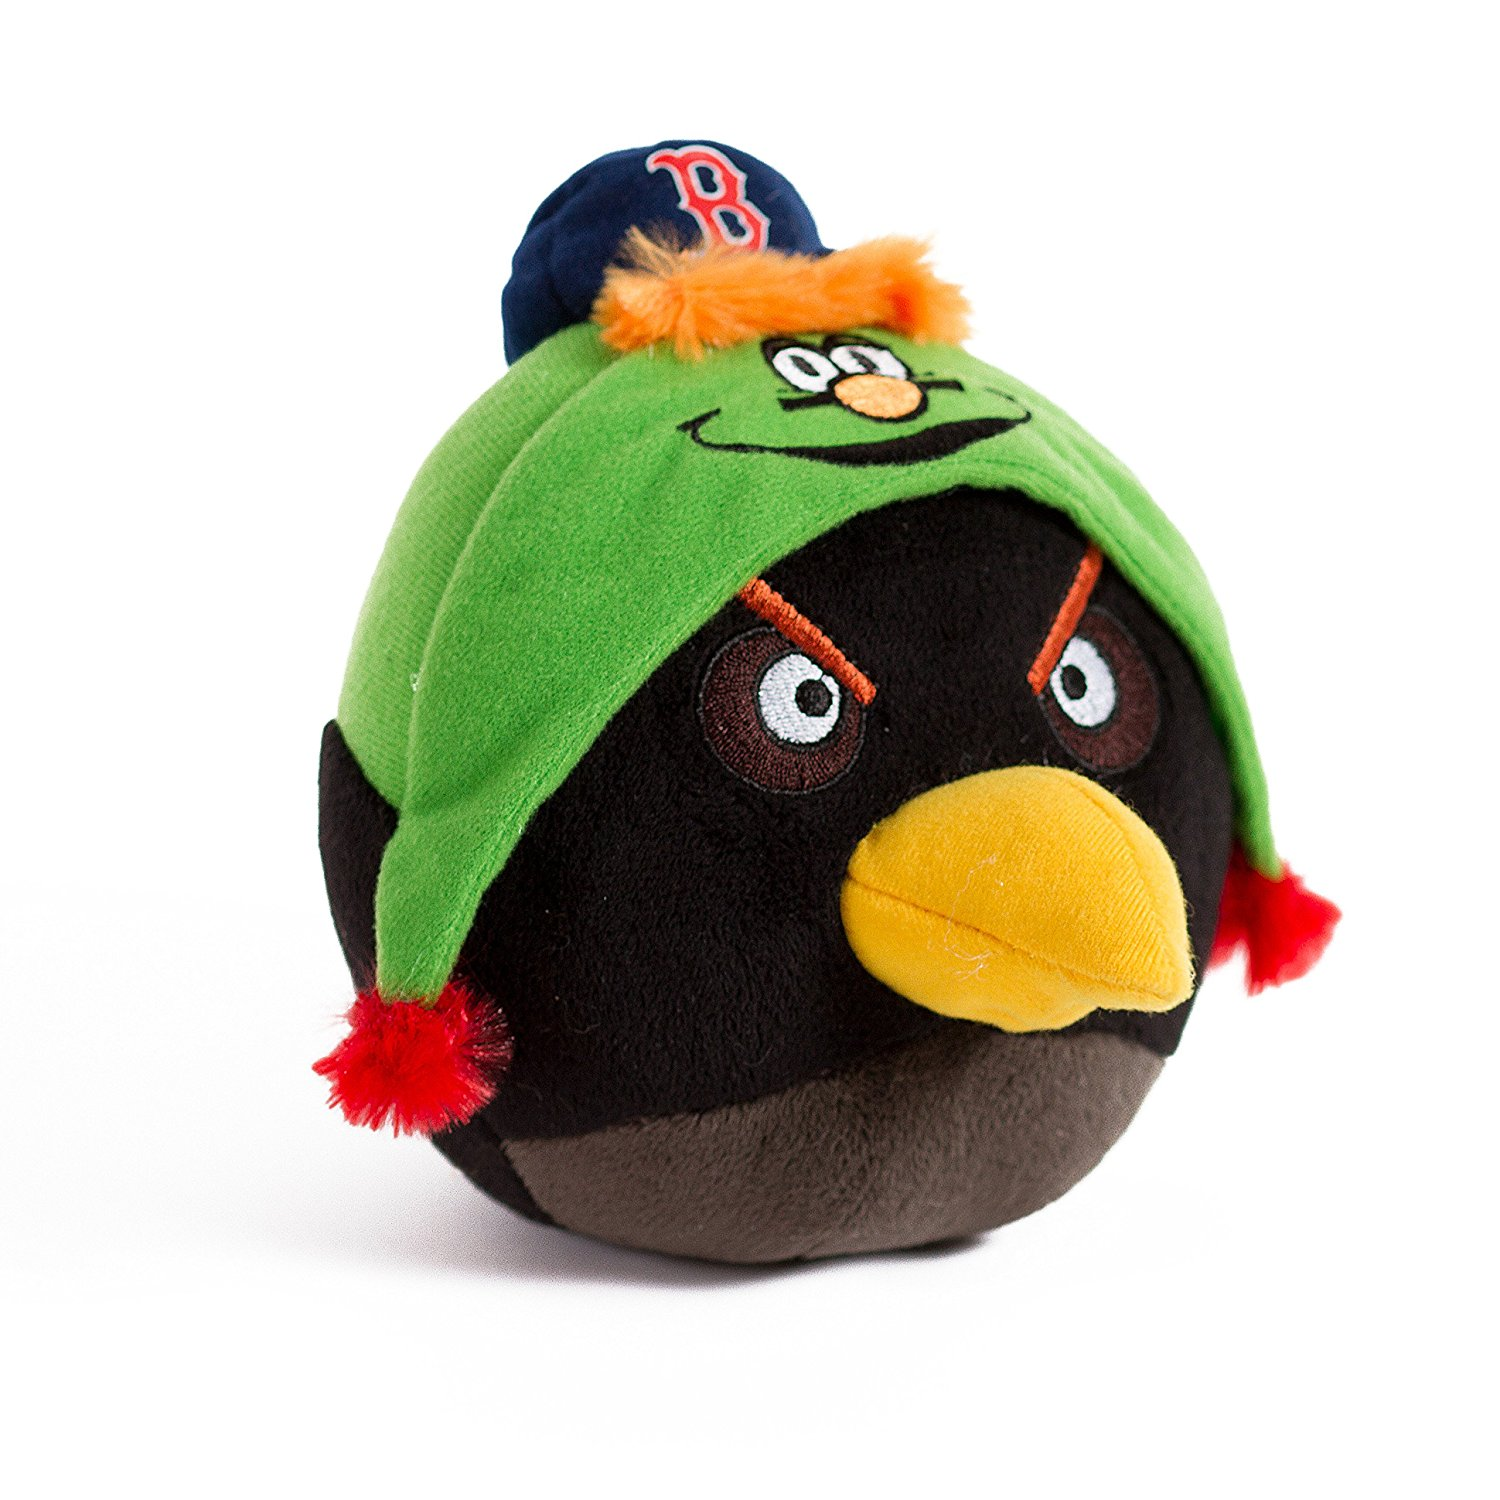 Buy Mlb Boston Red Sox Angry Bird Plush Toy Small Black In Cheap